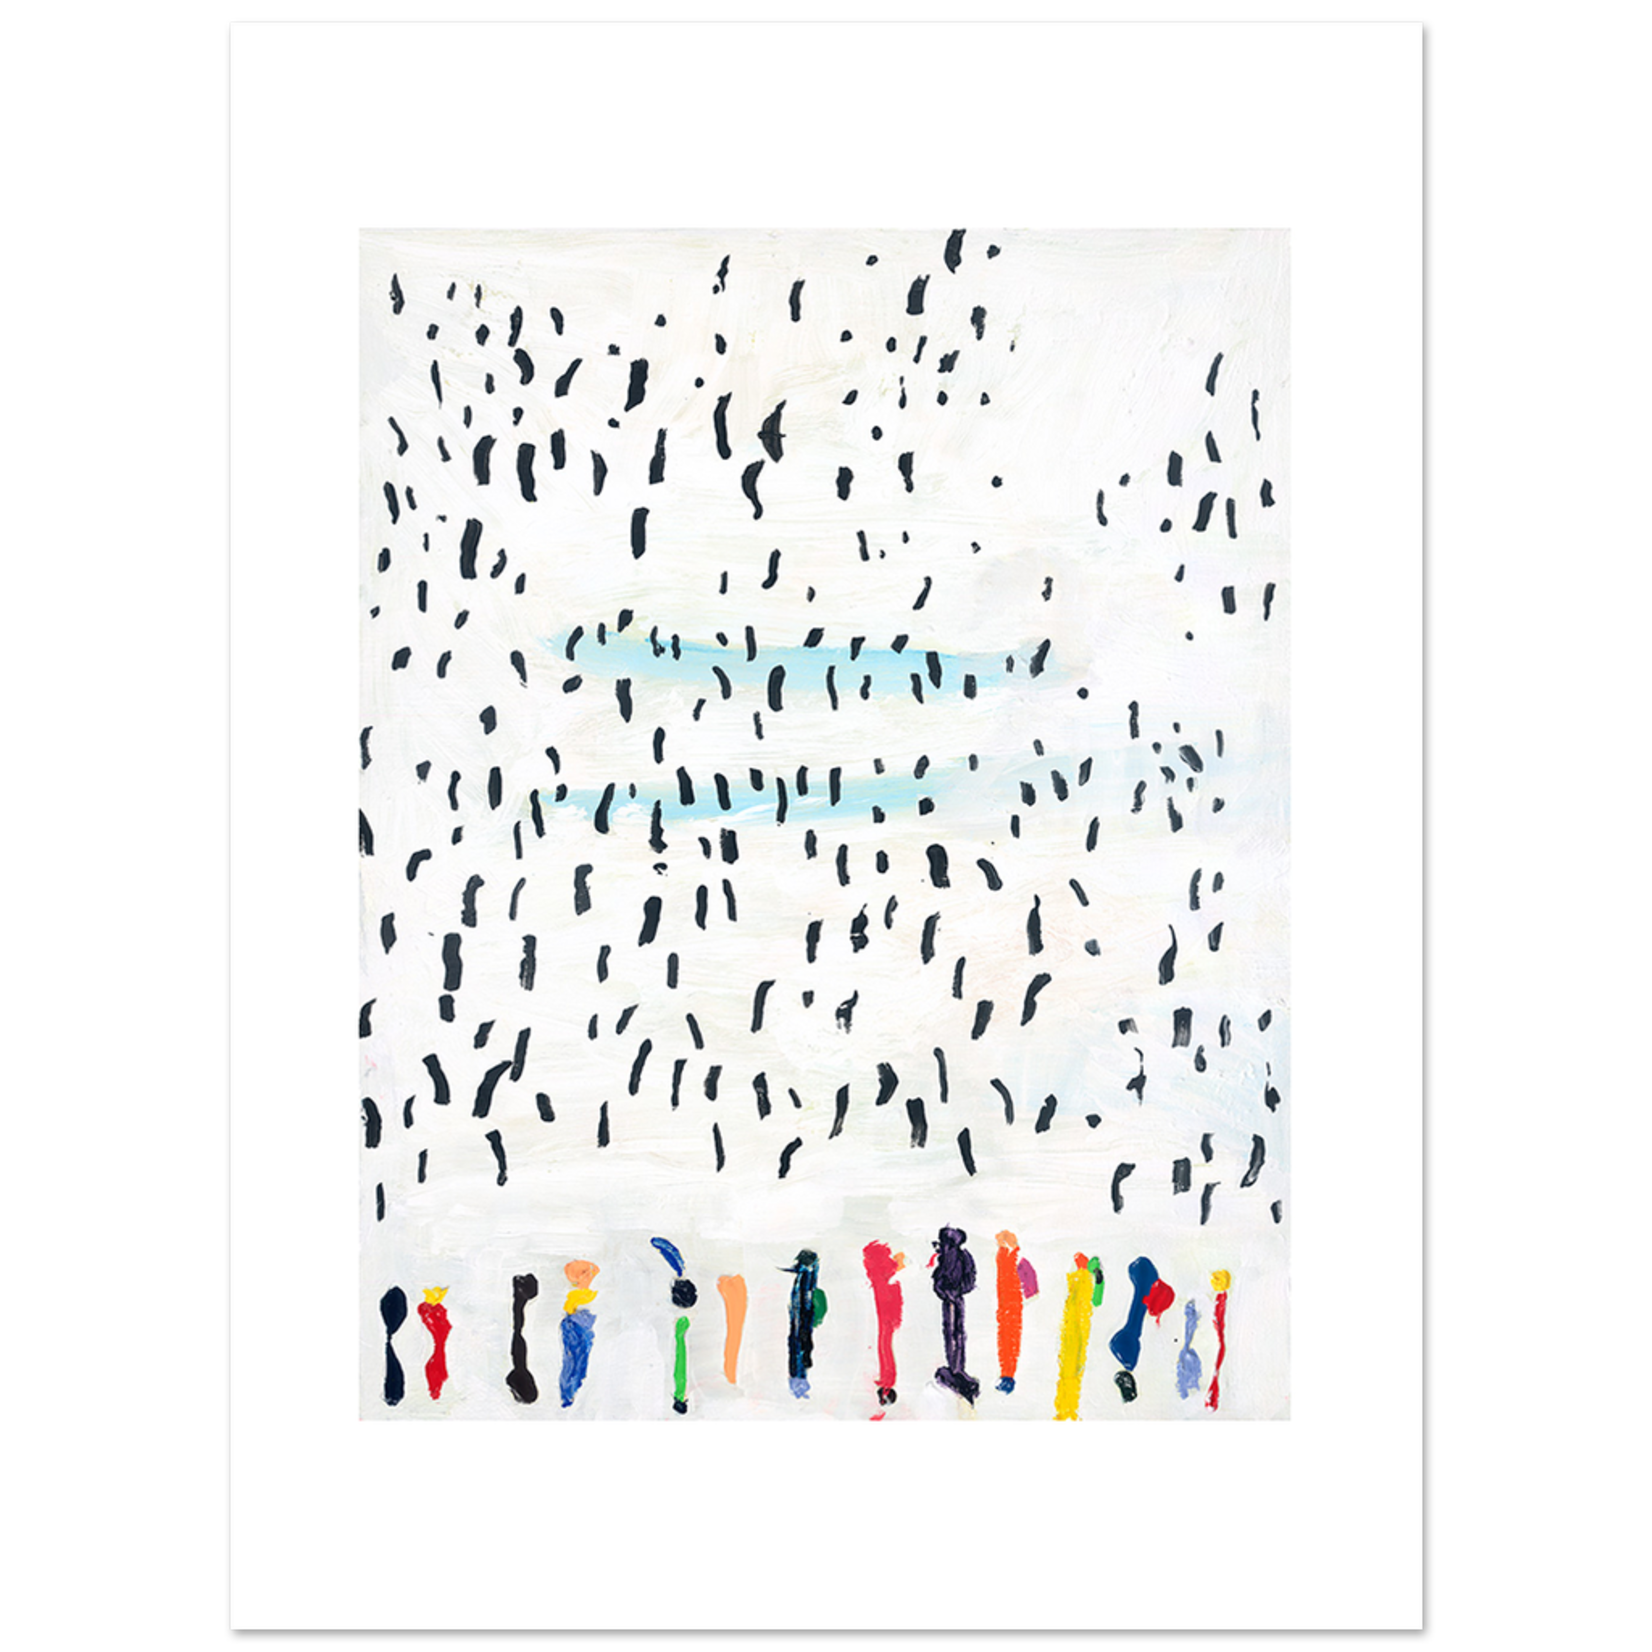 Limited Edition Prints Penguins and people III, 2015